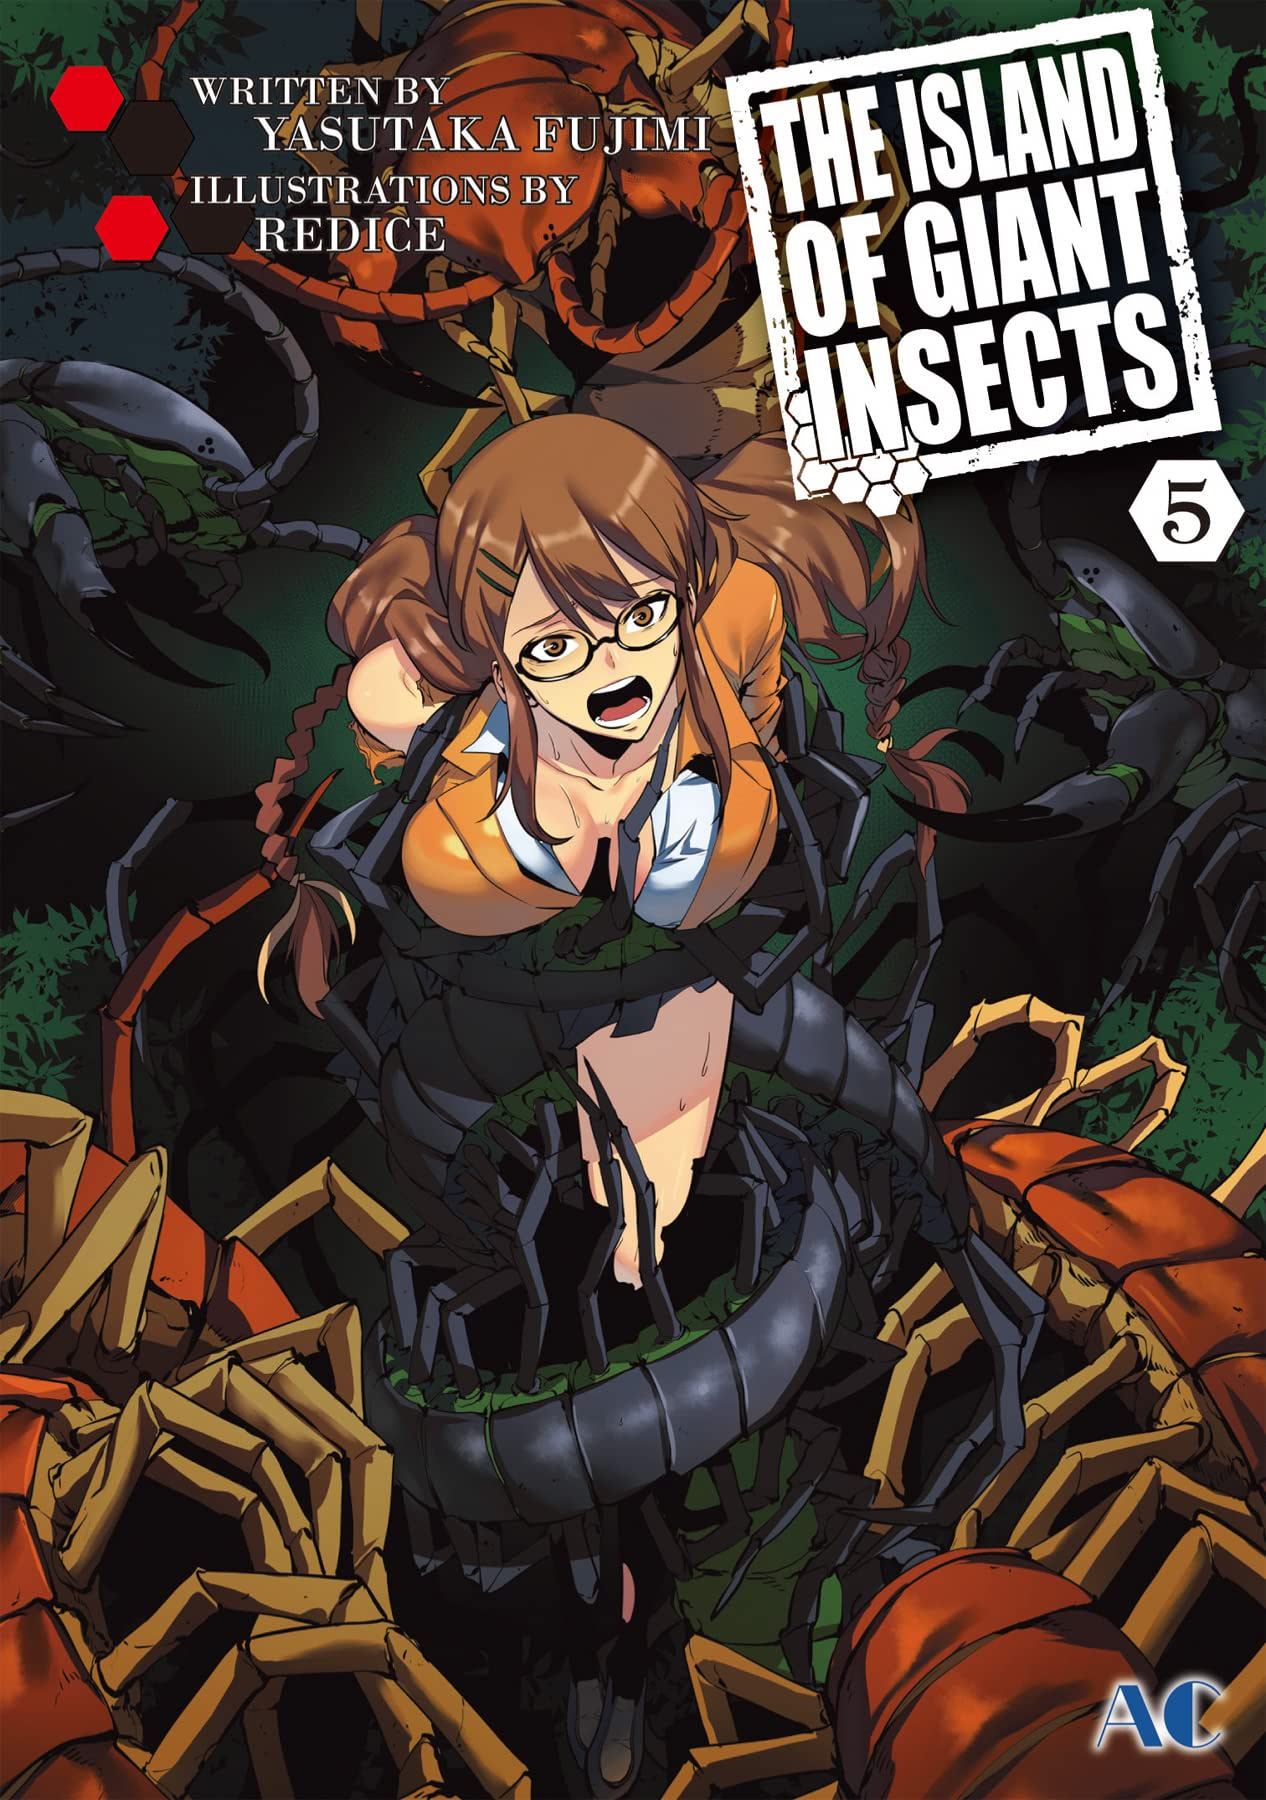 THE ISLAND OF GIANT INSECTS Vol. 5